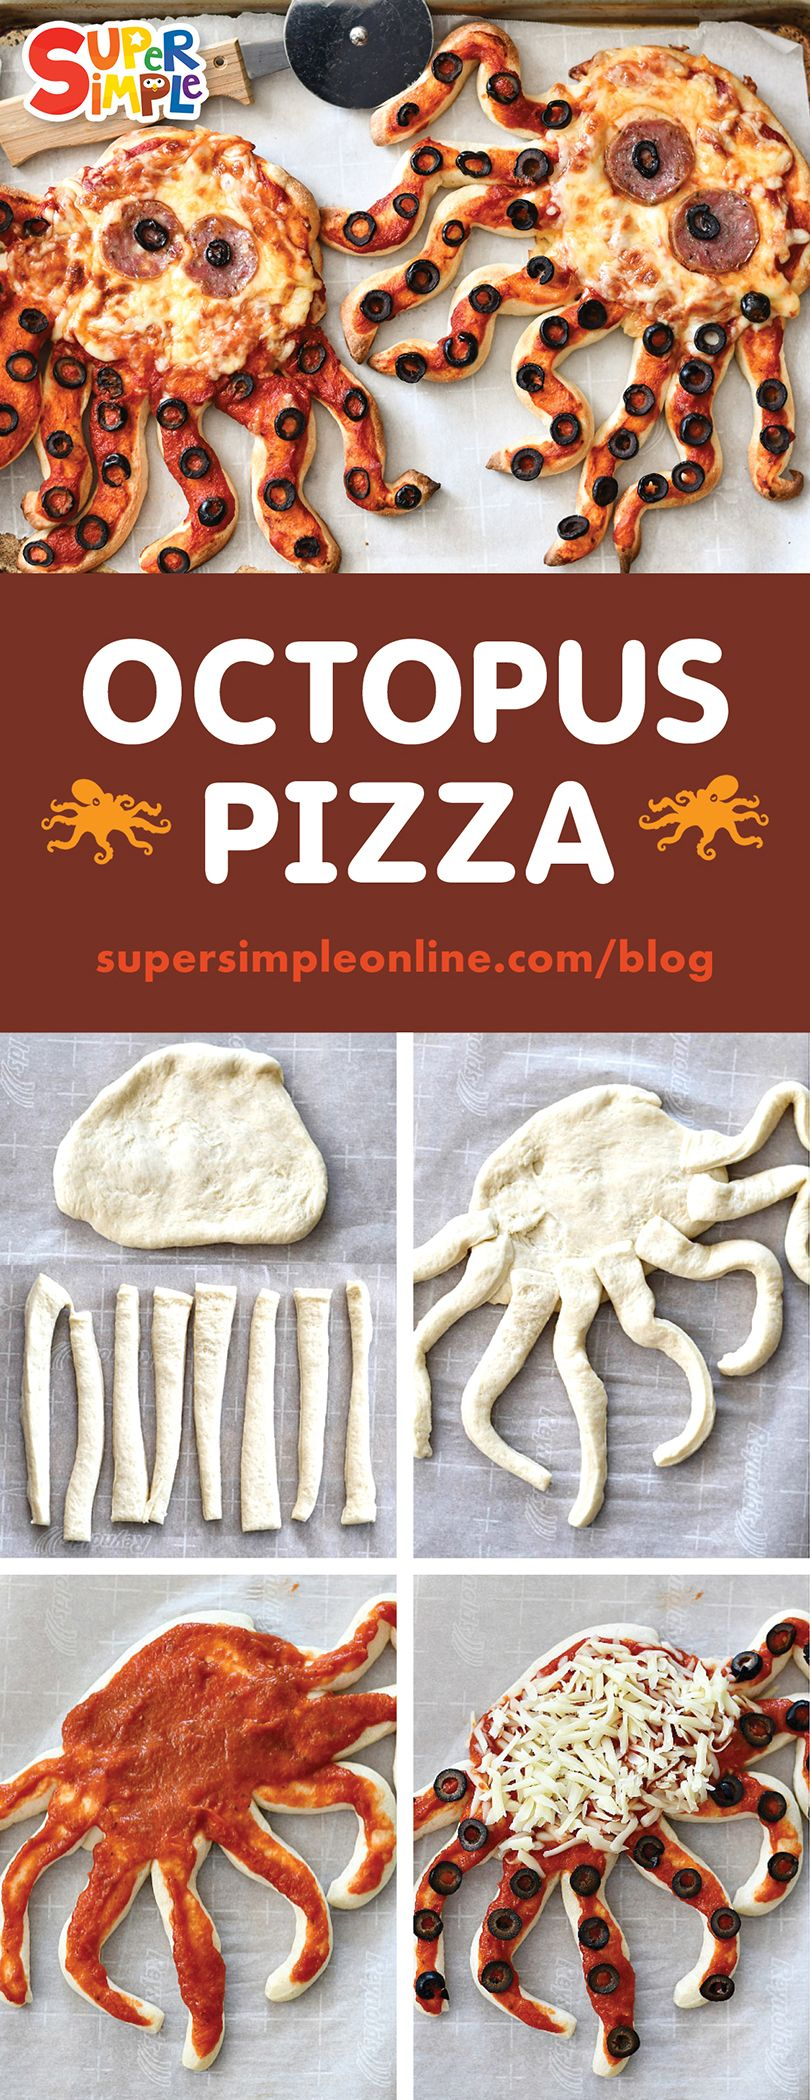 Octopus Pizza images